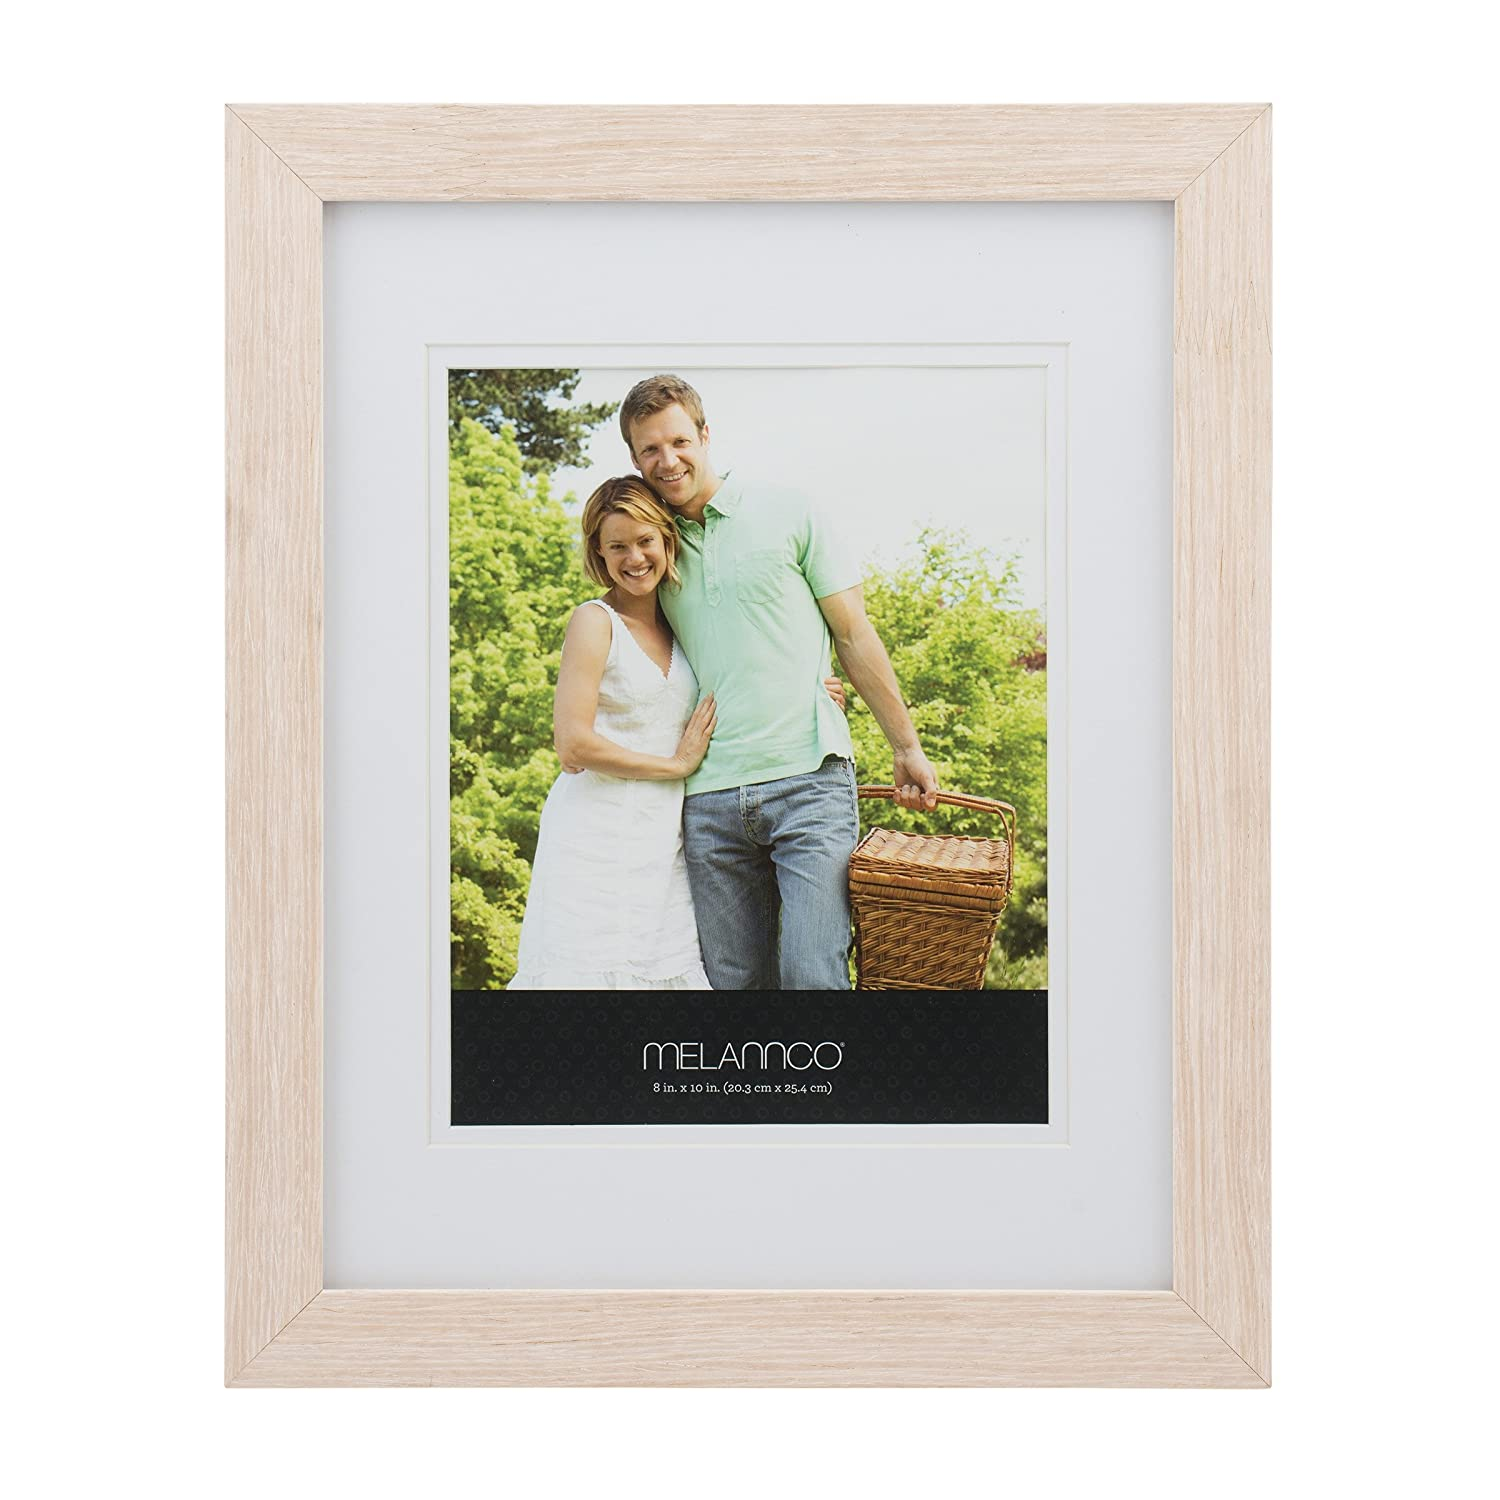 MELANNCO 2-Opening Natural Wood Frame 10-Inch-by-13-Inch